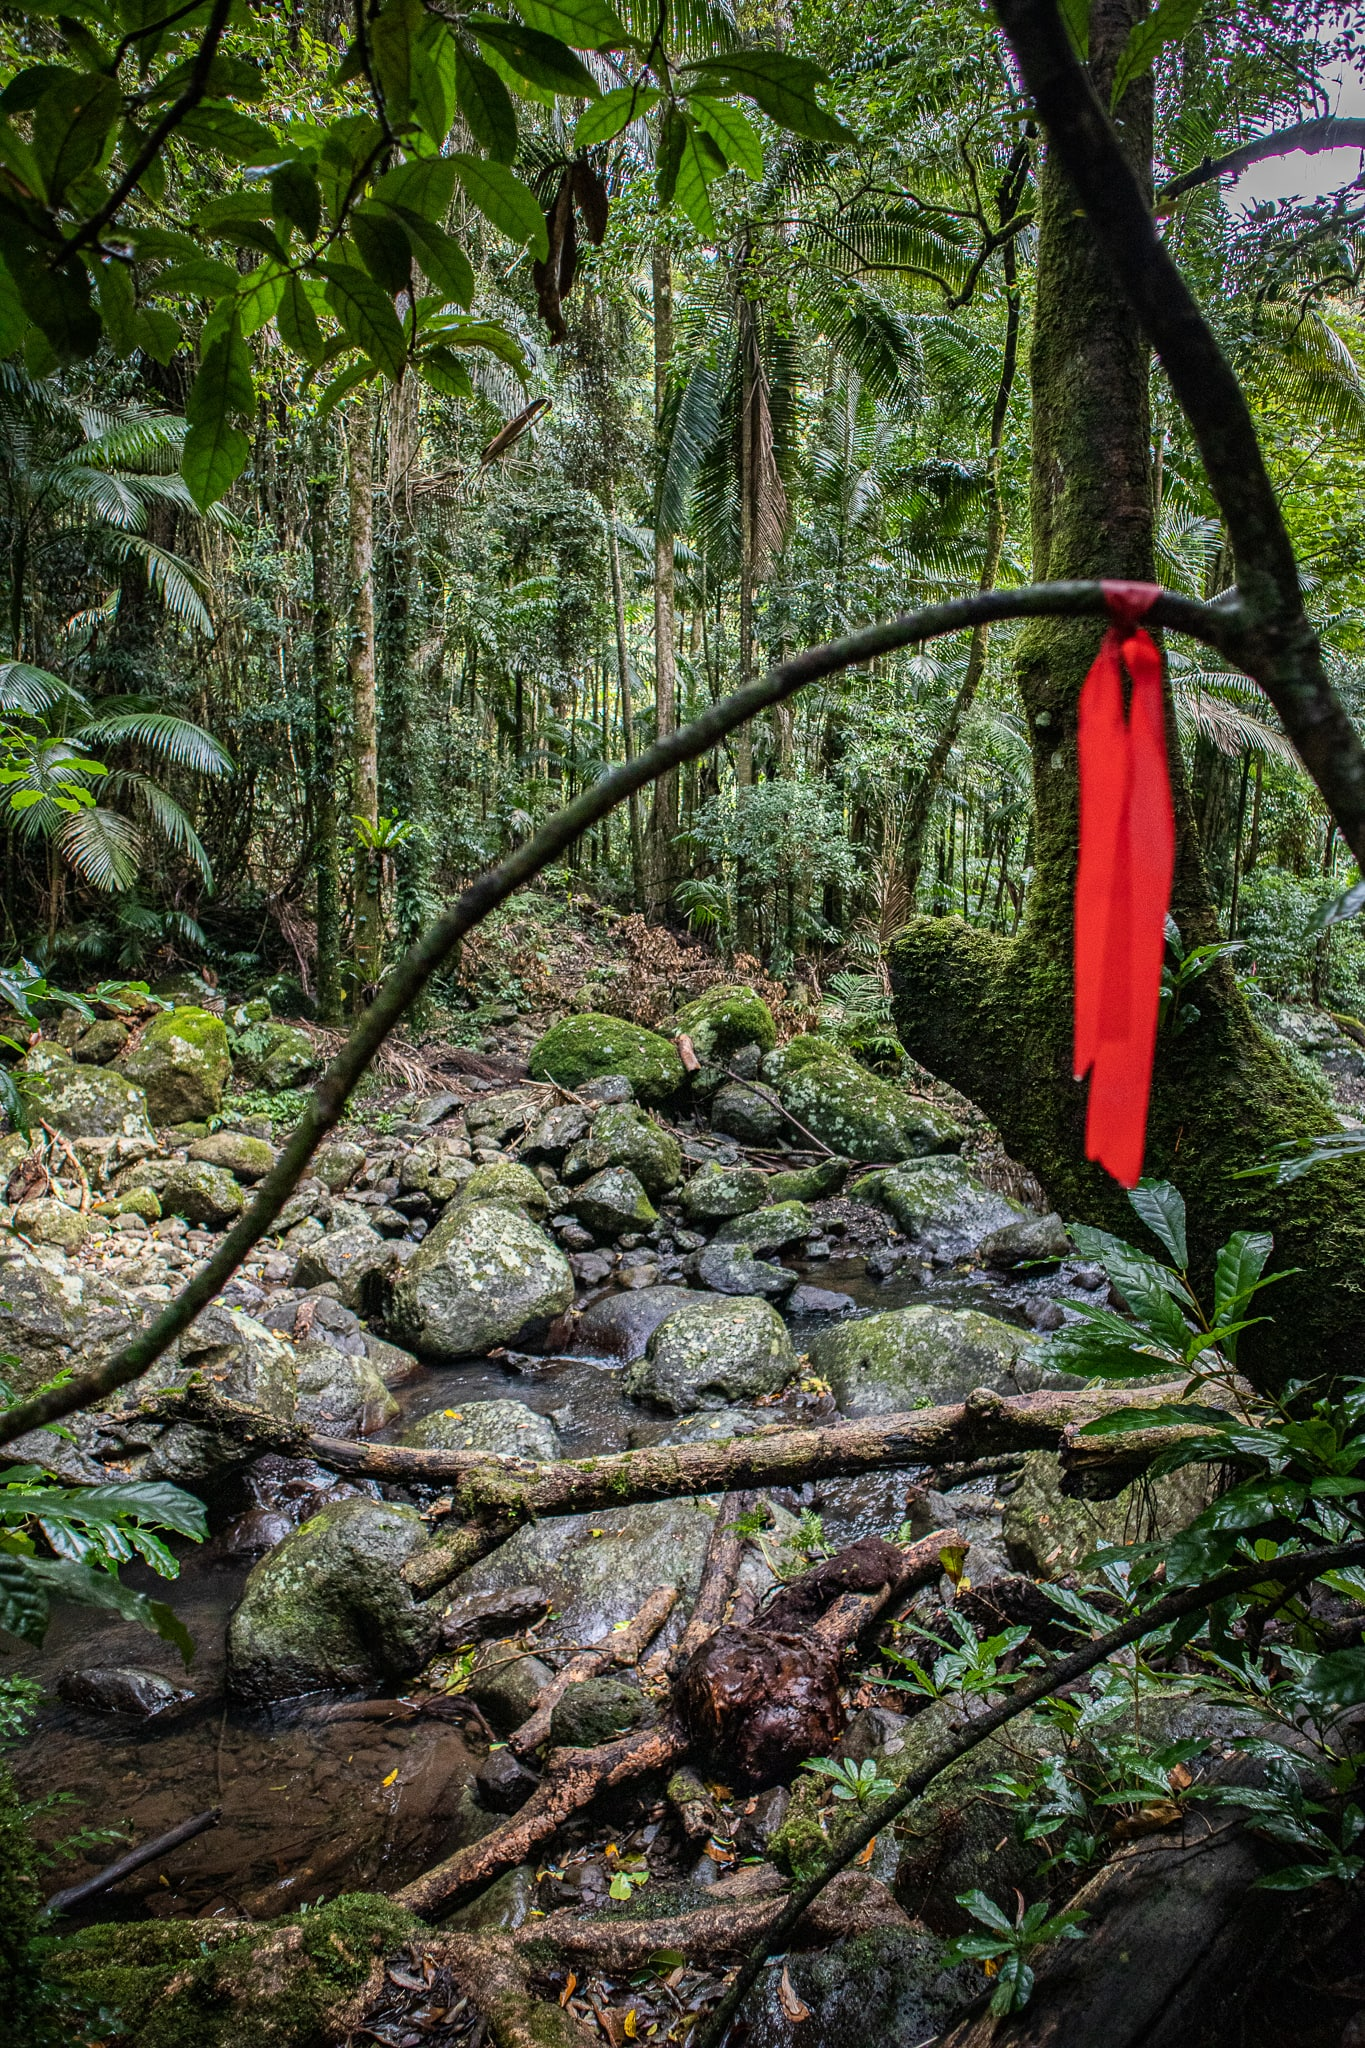 Red ribbon tied to a tree in the rainforest indicating where the hiking trail is